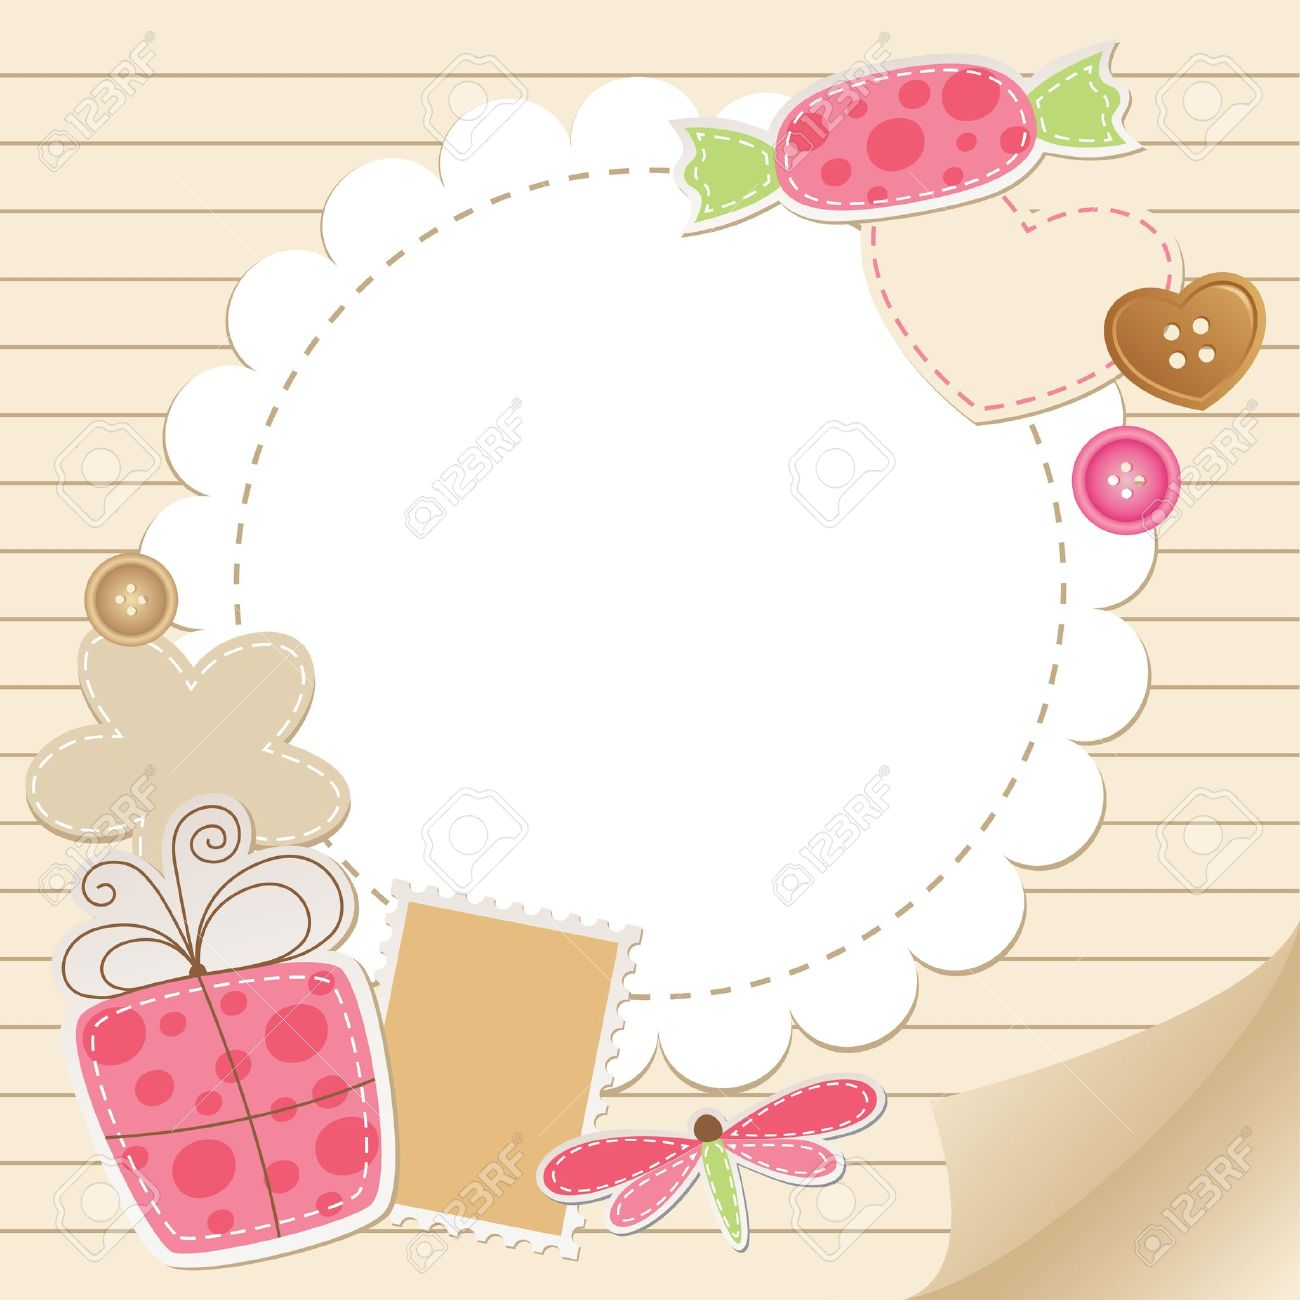 cute vintage greeting card with scrapbook elements.